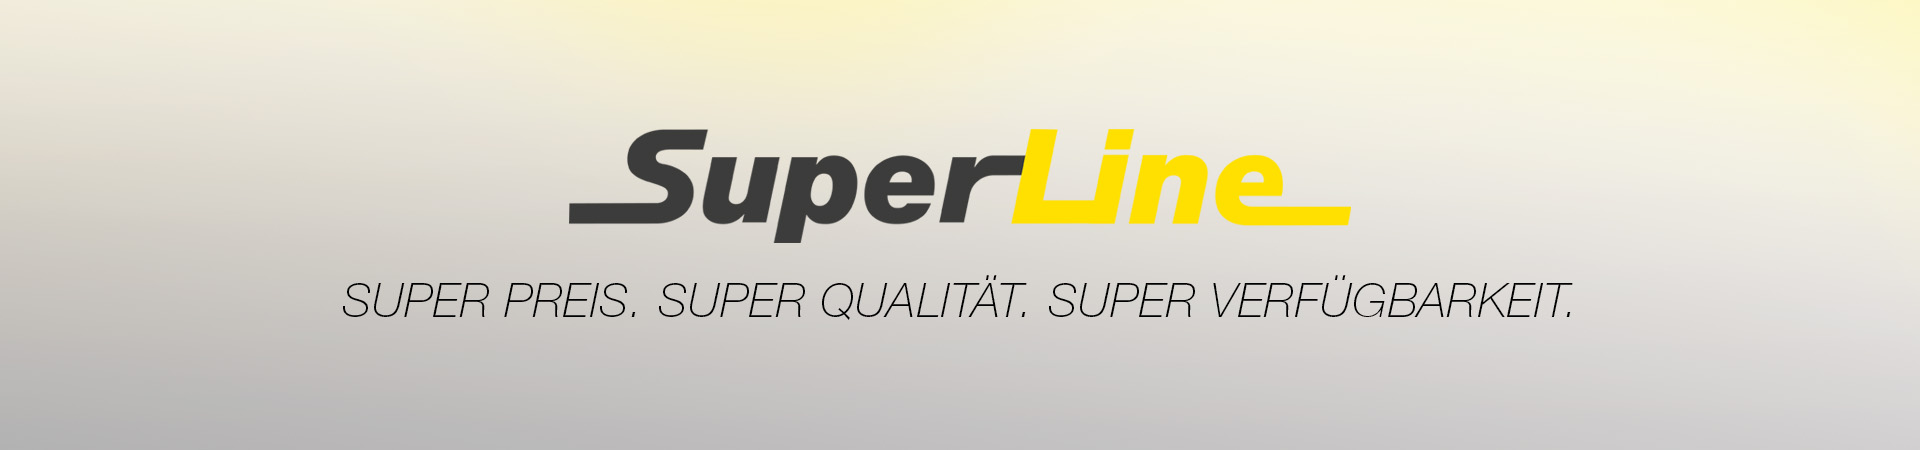 Auszugsprogramm SuperLine